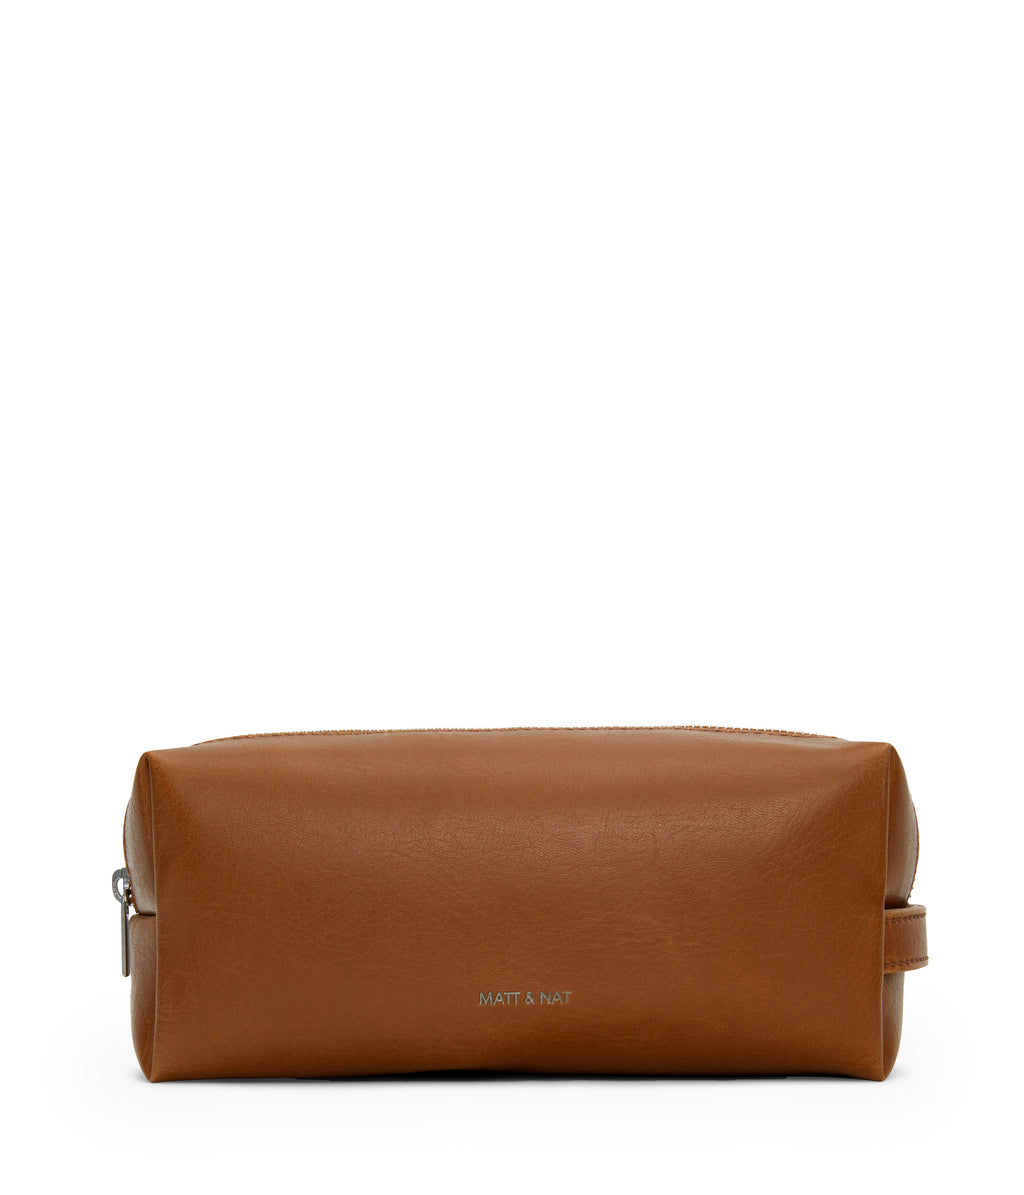 BLAIR Toiletry Case - Chili Matte Nickel by Matt & Nat